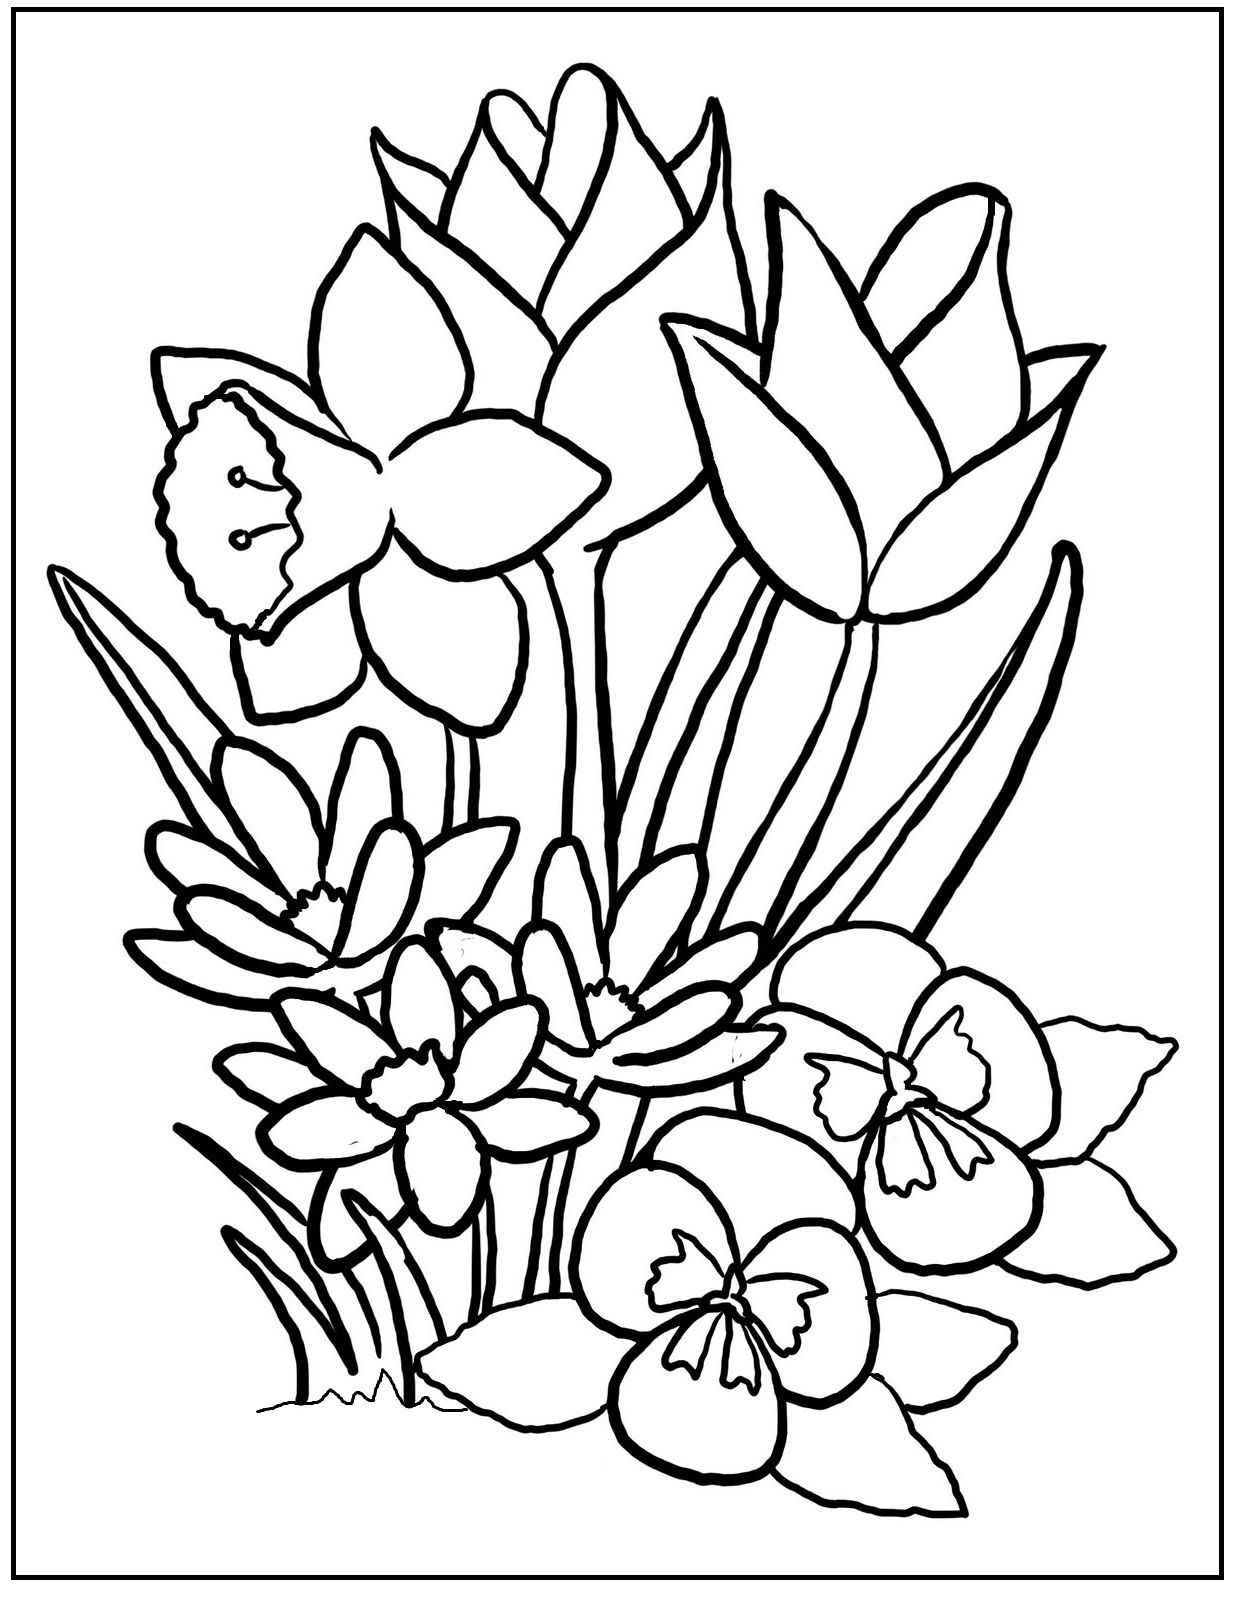 Colorful Flowers On Spring Day coloring picture for kids | Spring ...